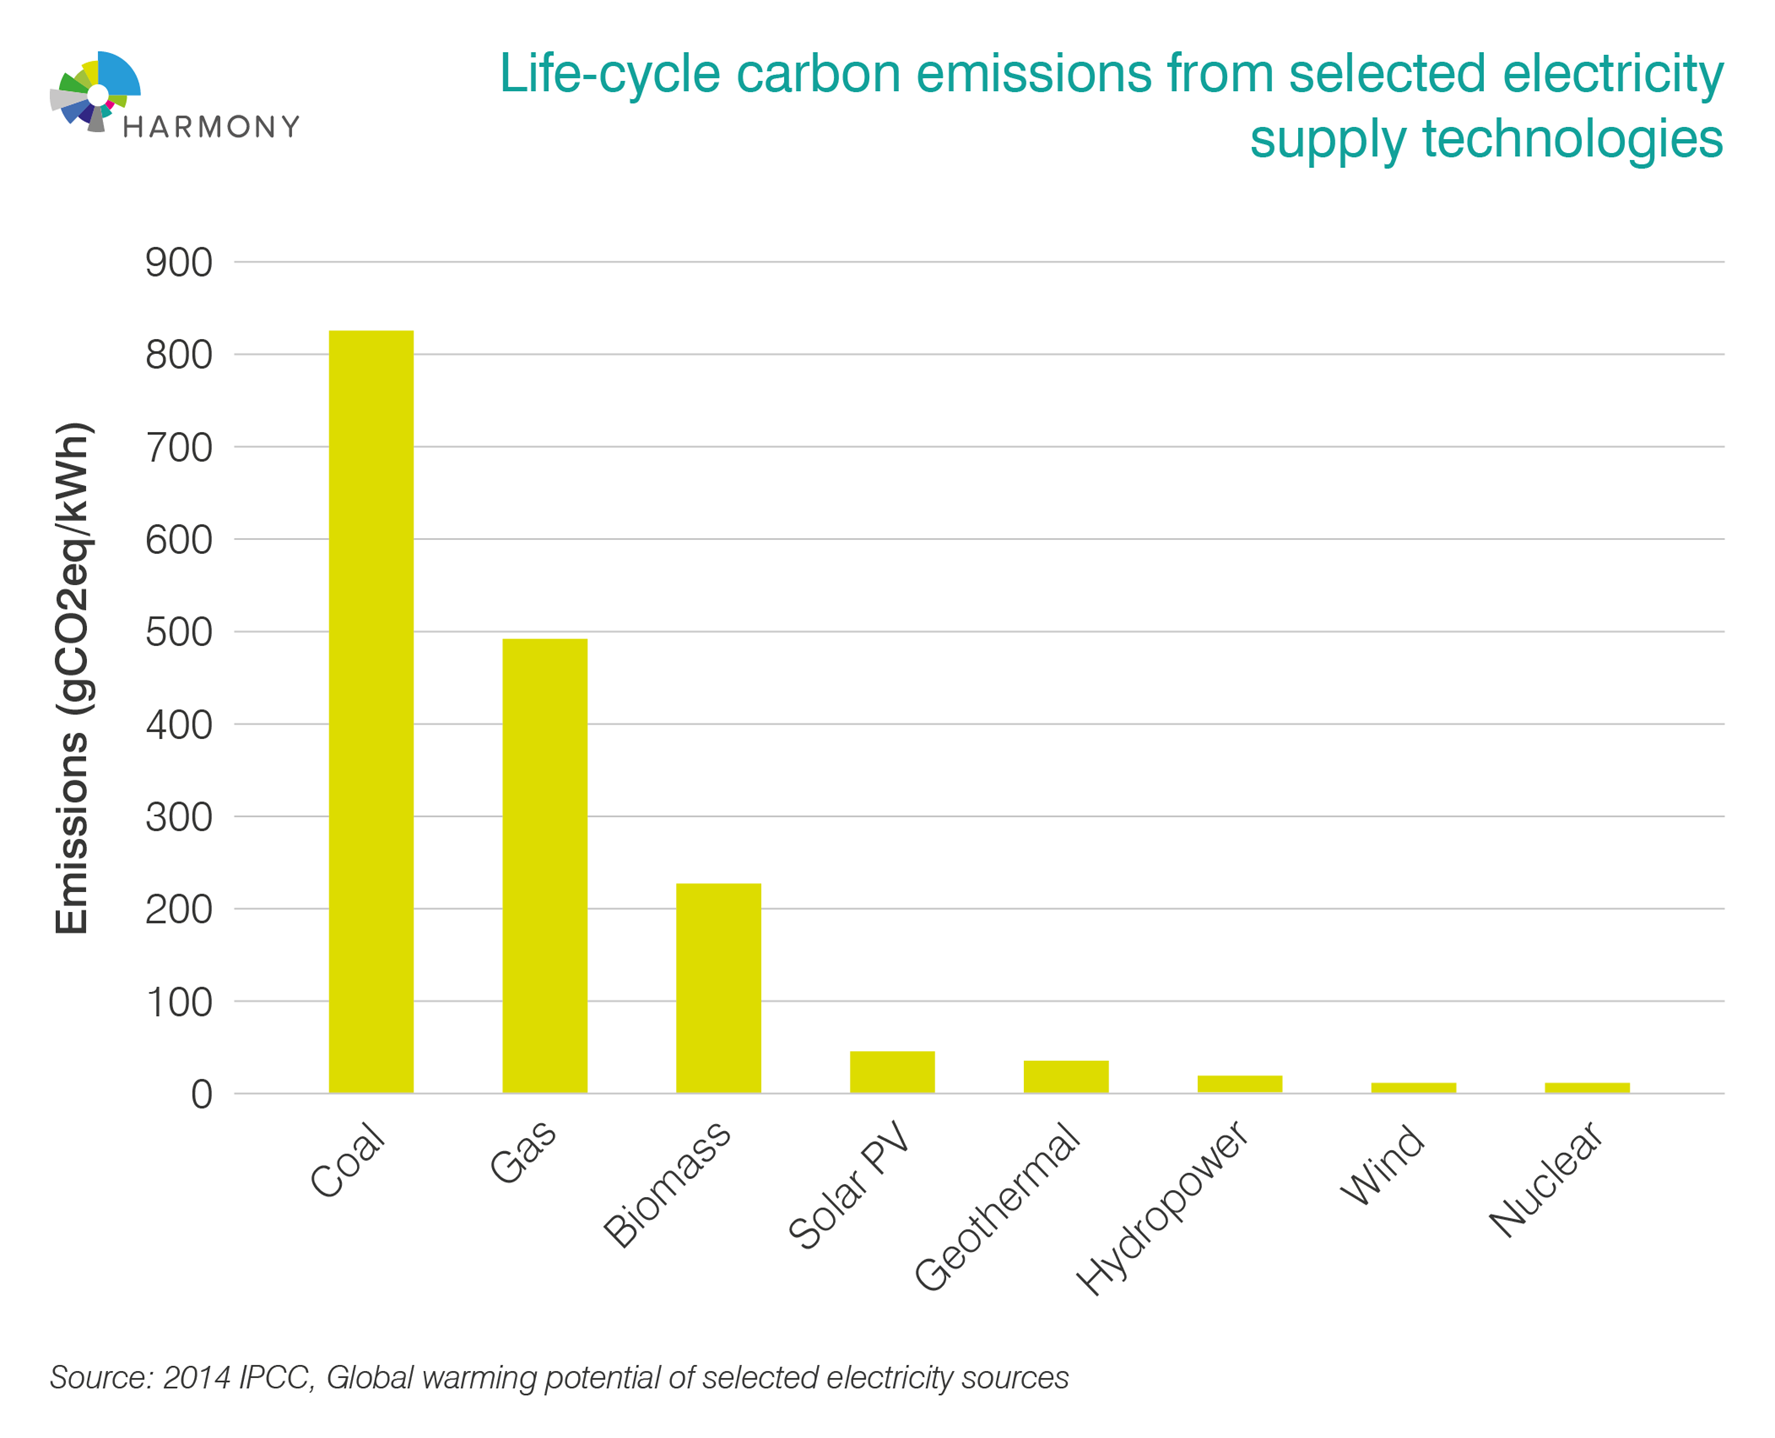 Nuclear energy is low-carbon